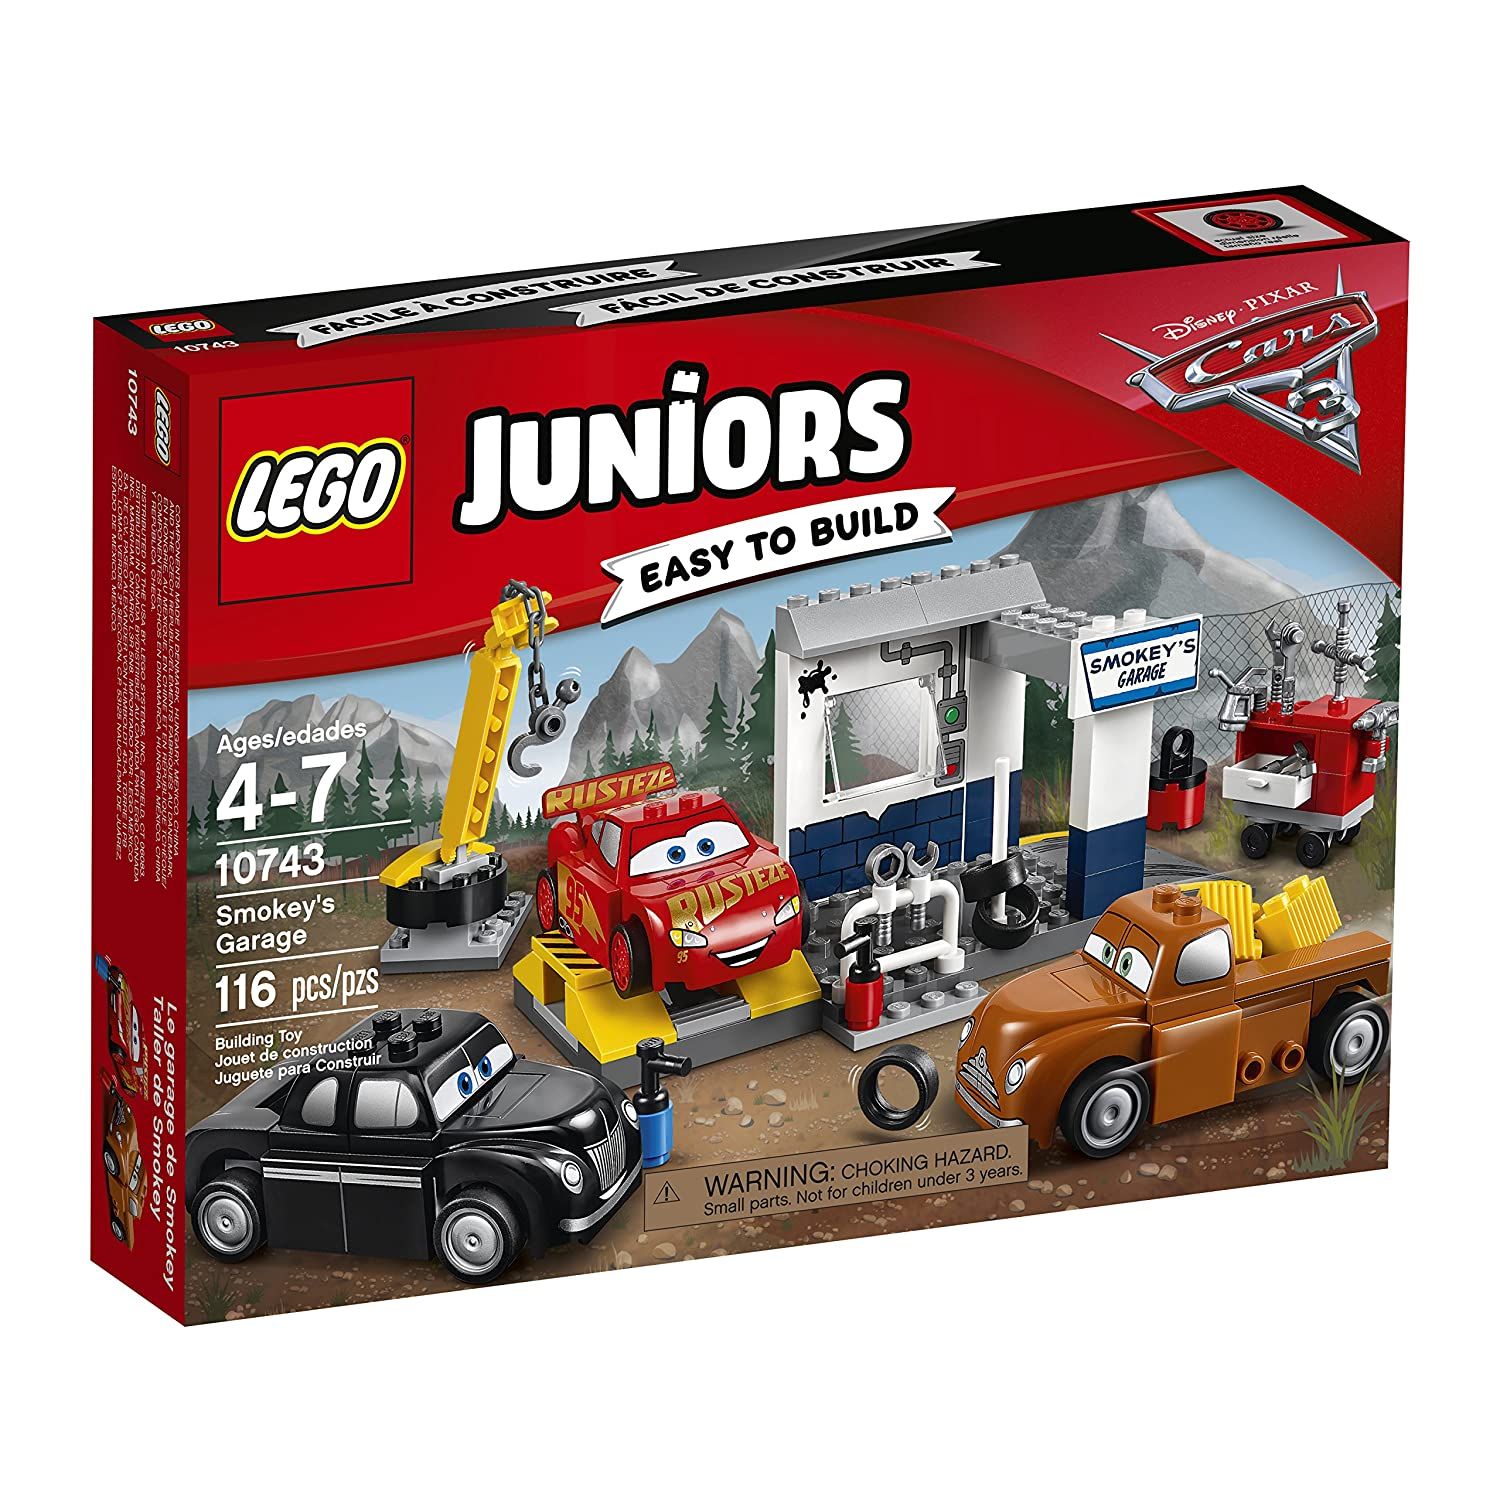 Amazoncom LEGO Juniors Smokeyu0027s Garage 10743 Building